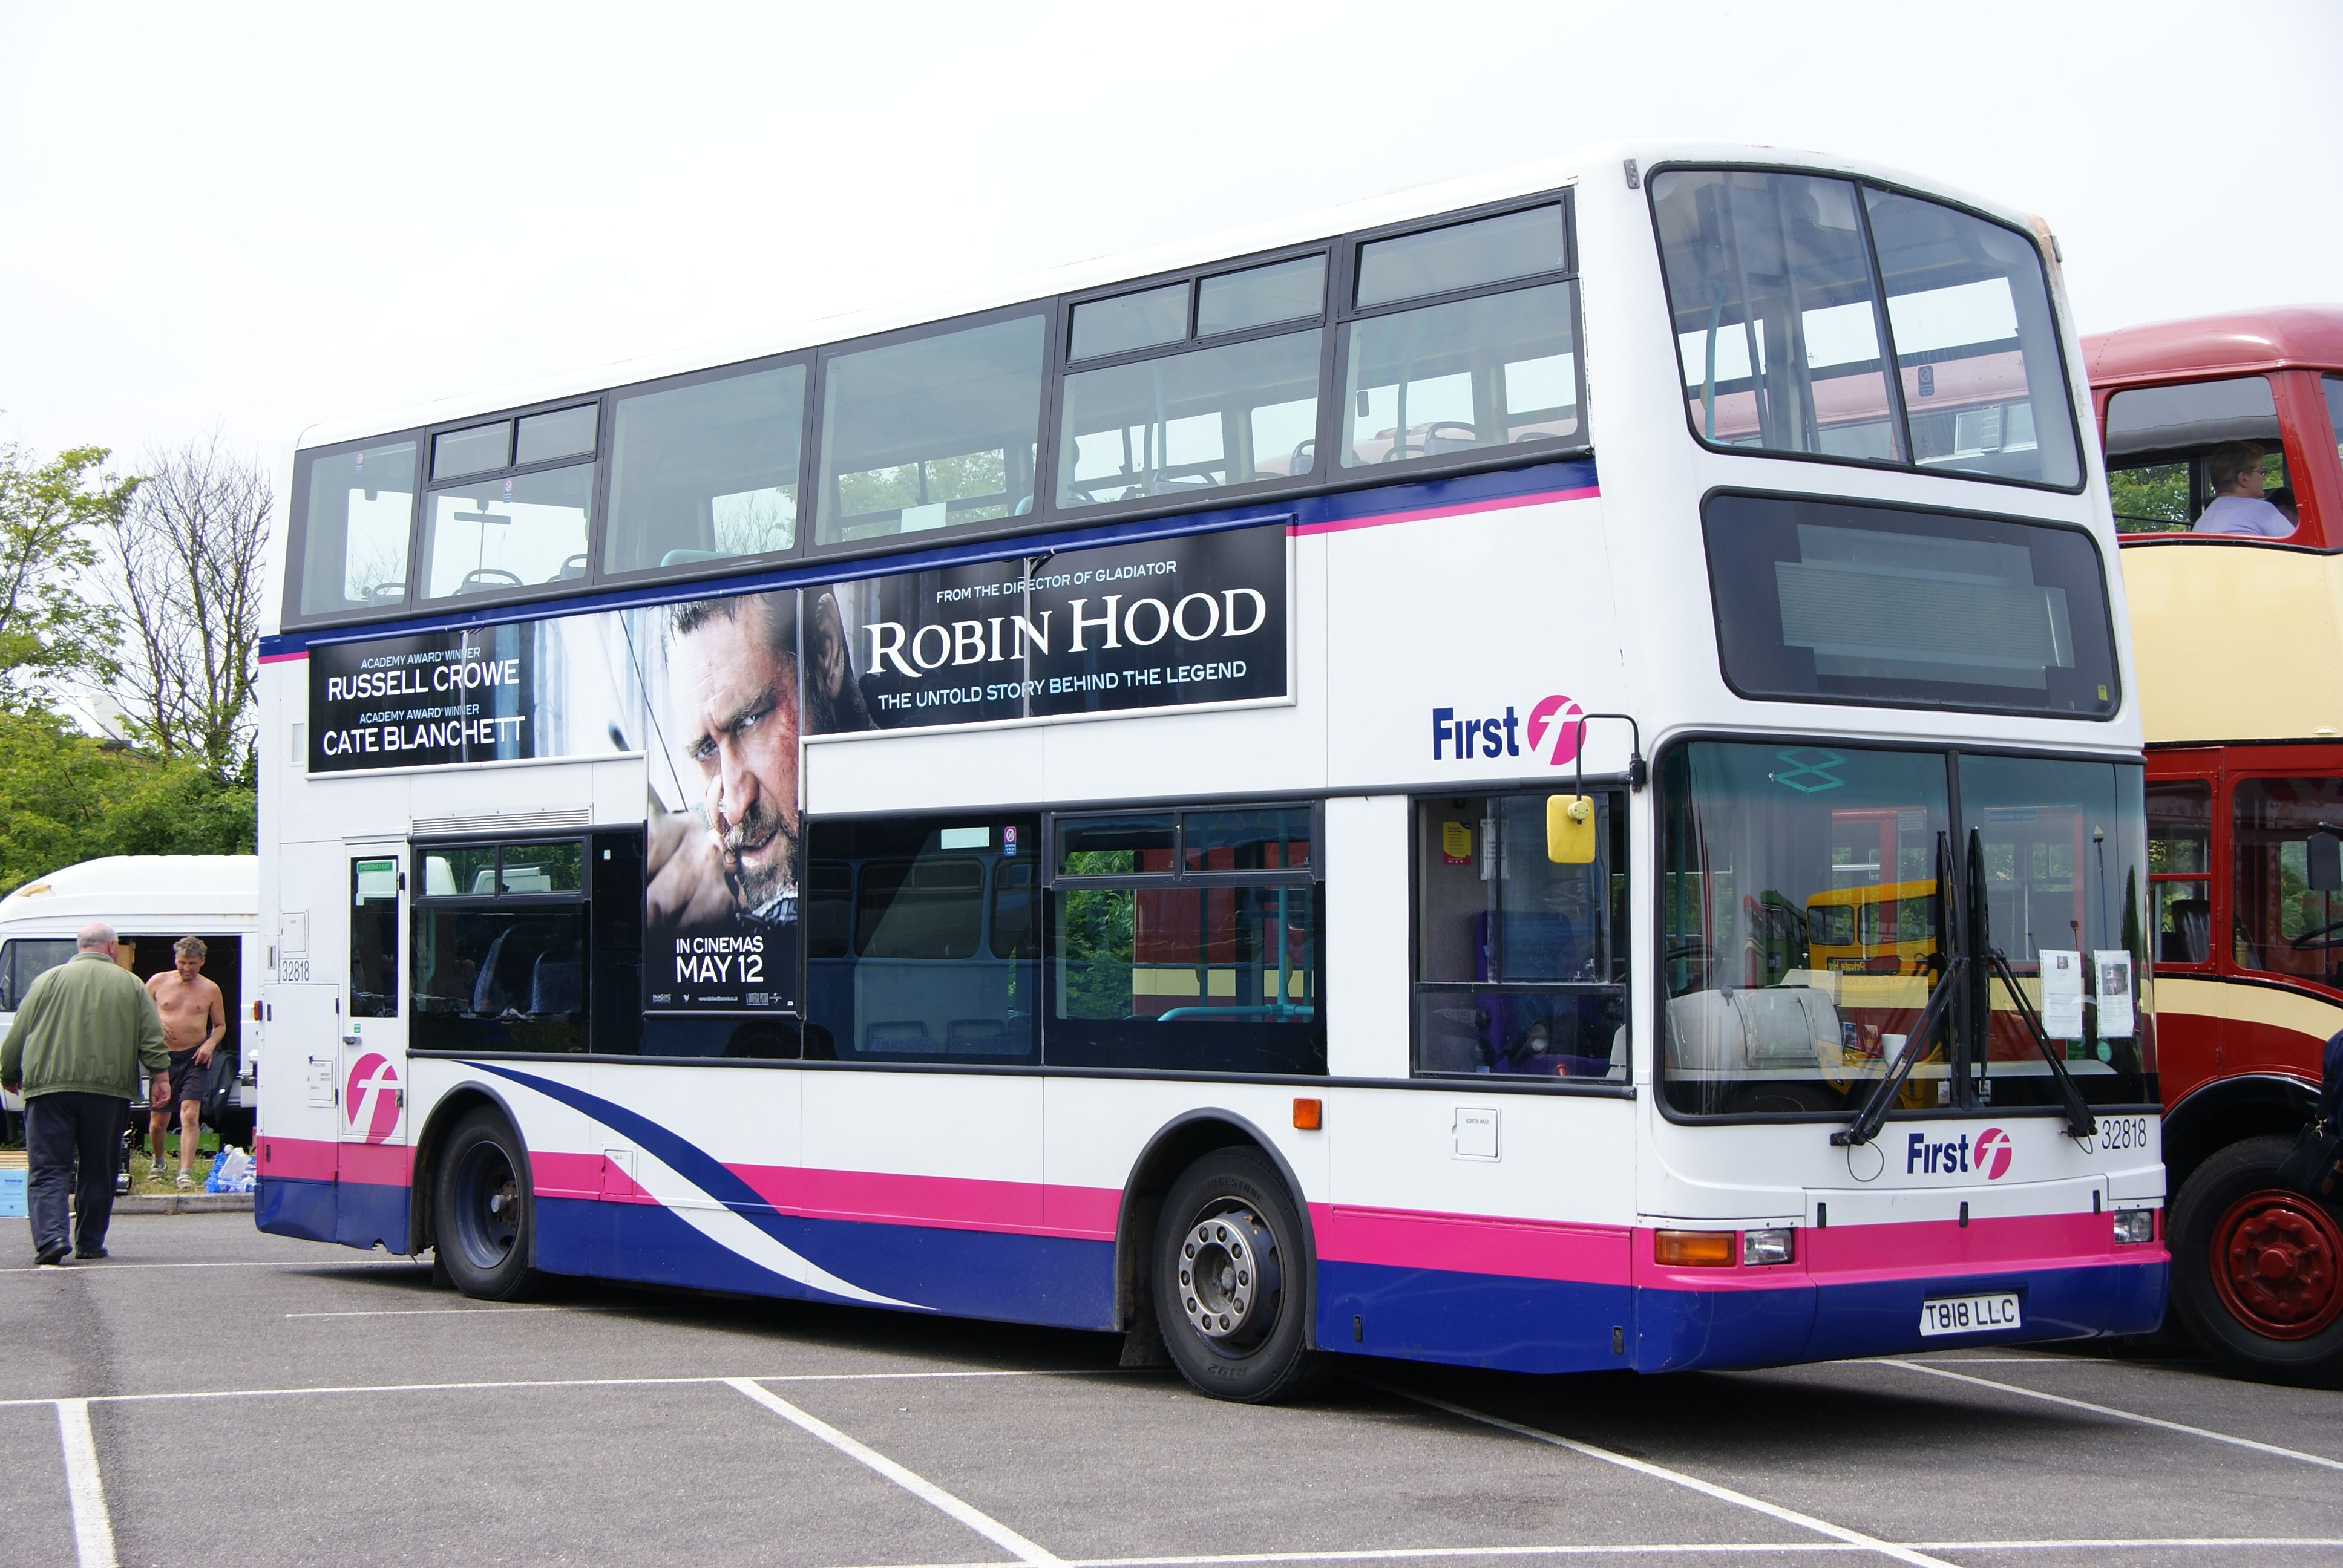 Sheffield SU President makes deal to freeze student bus fares at £1